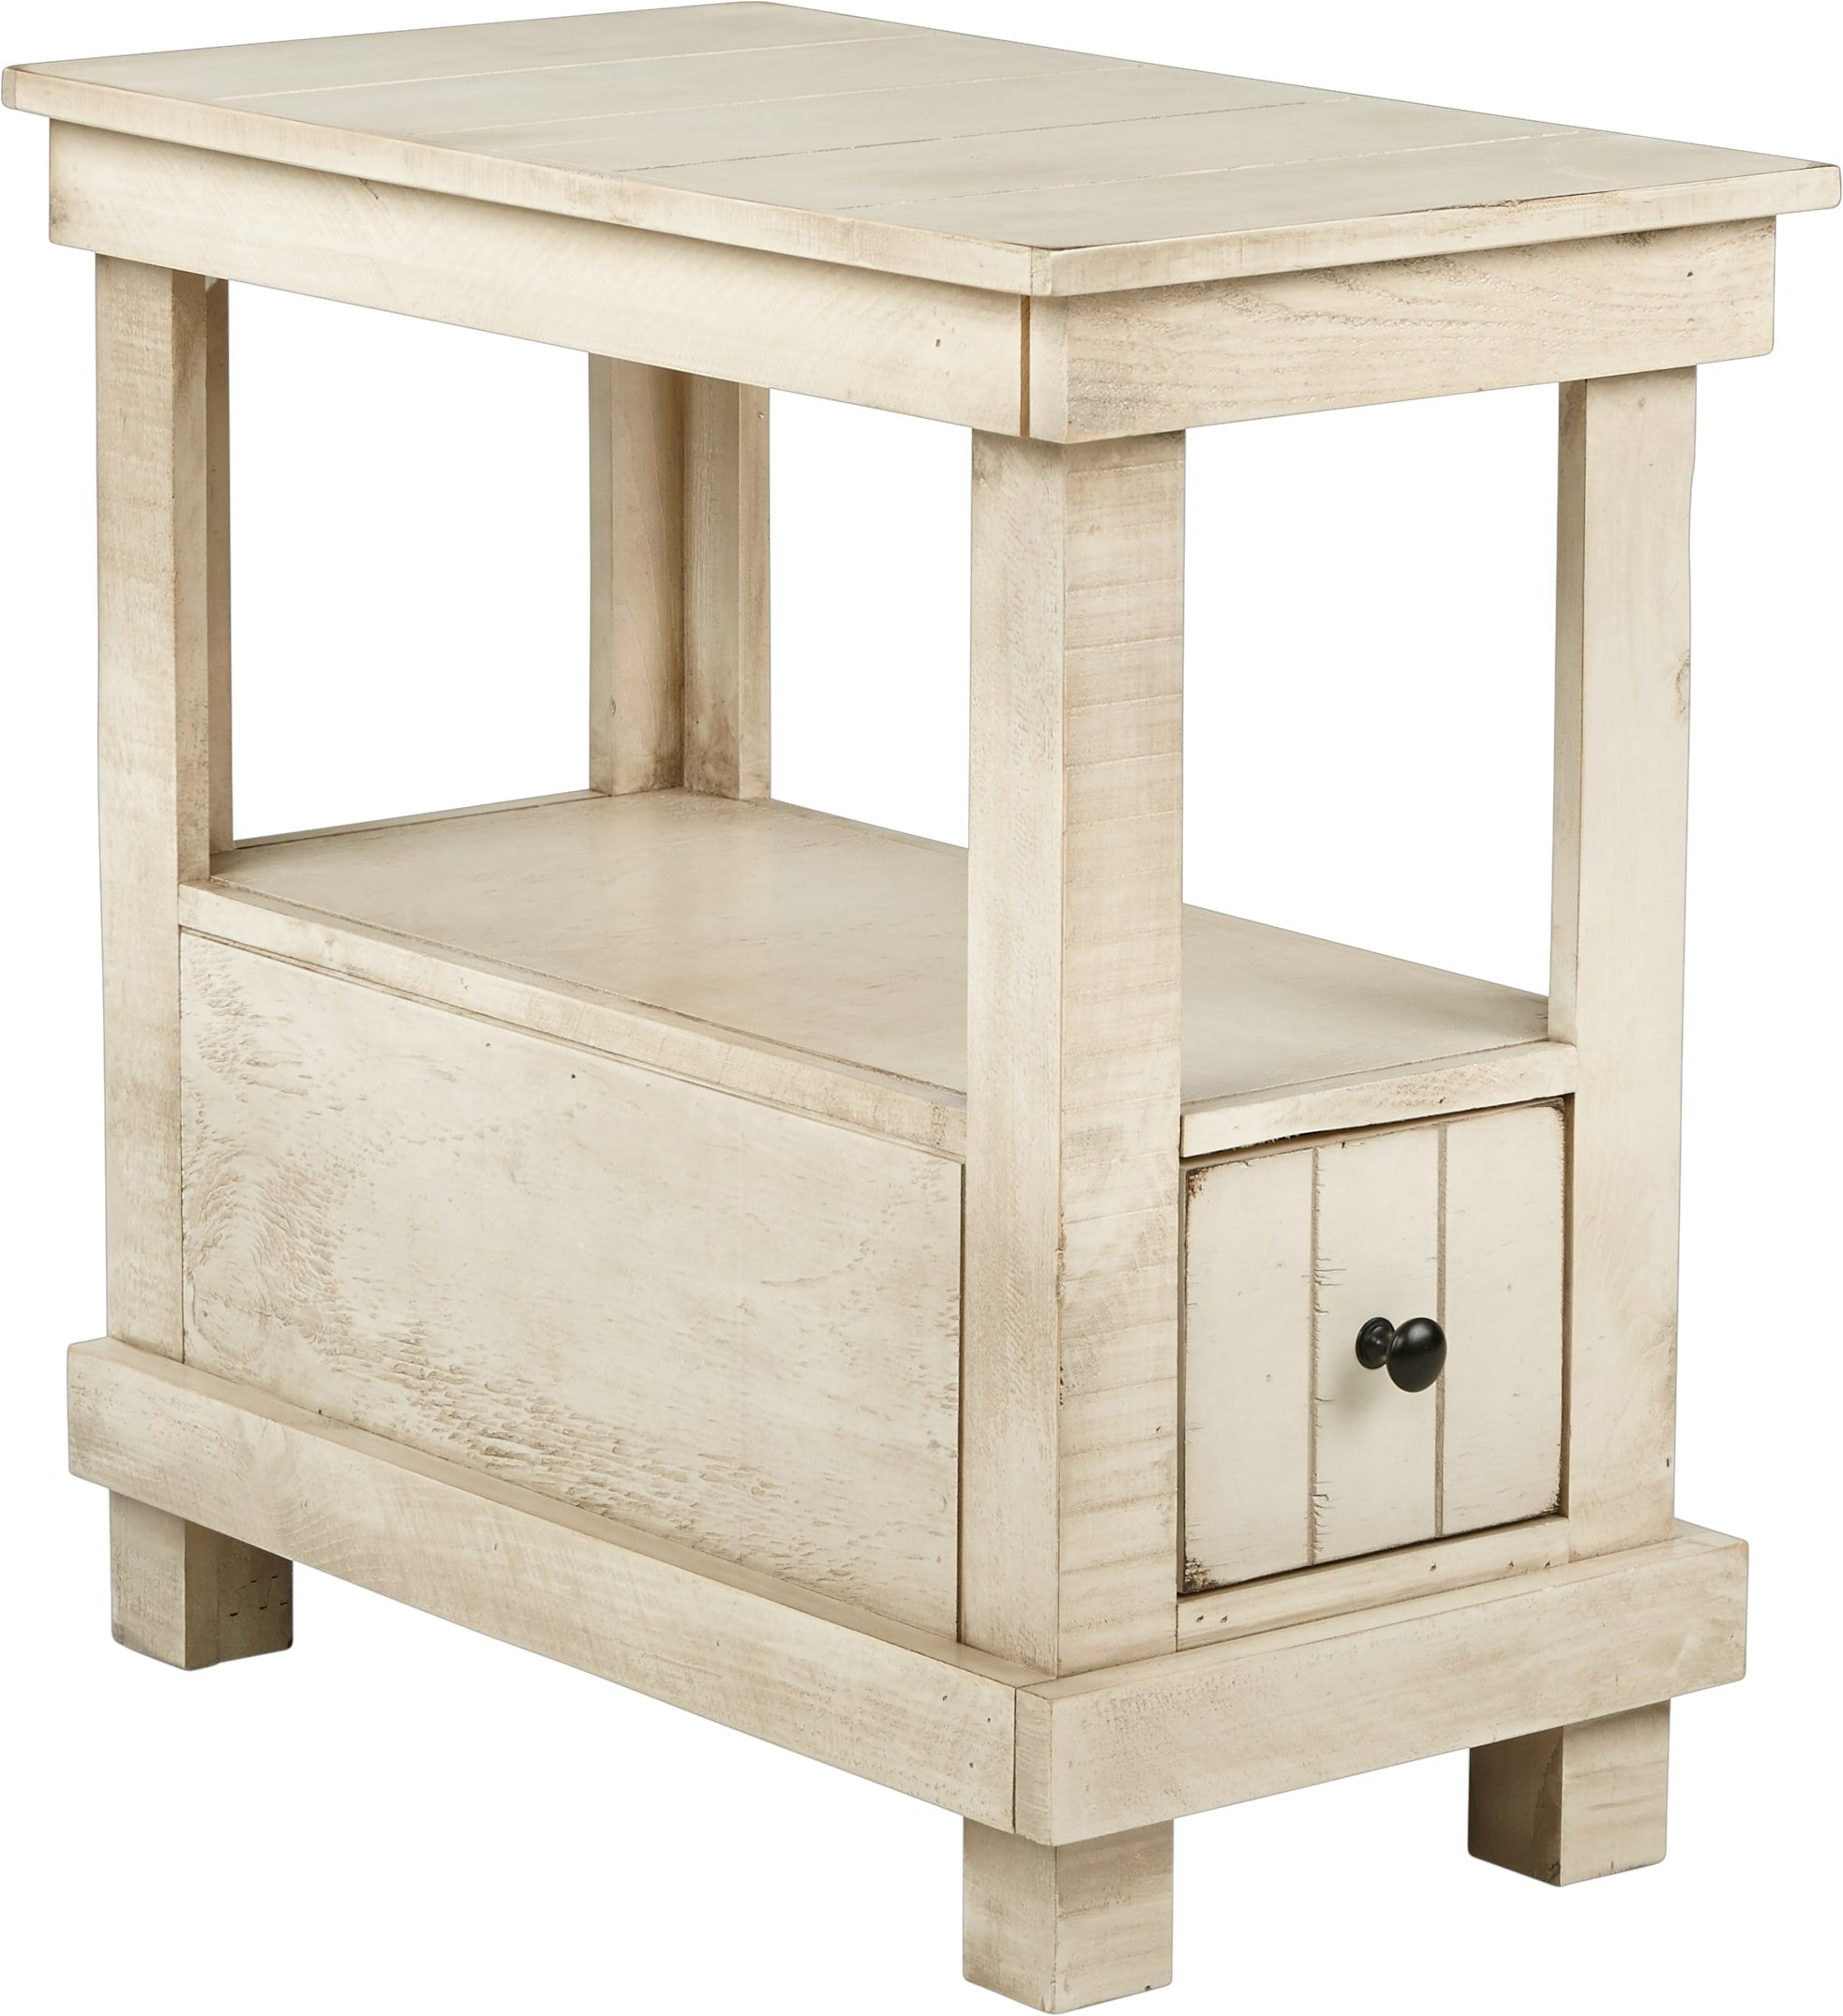 Havenwood White Chairside Table